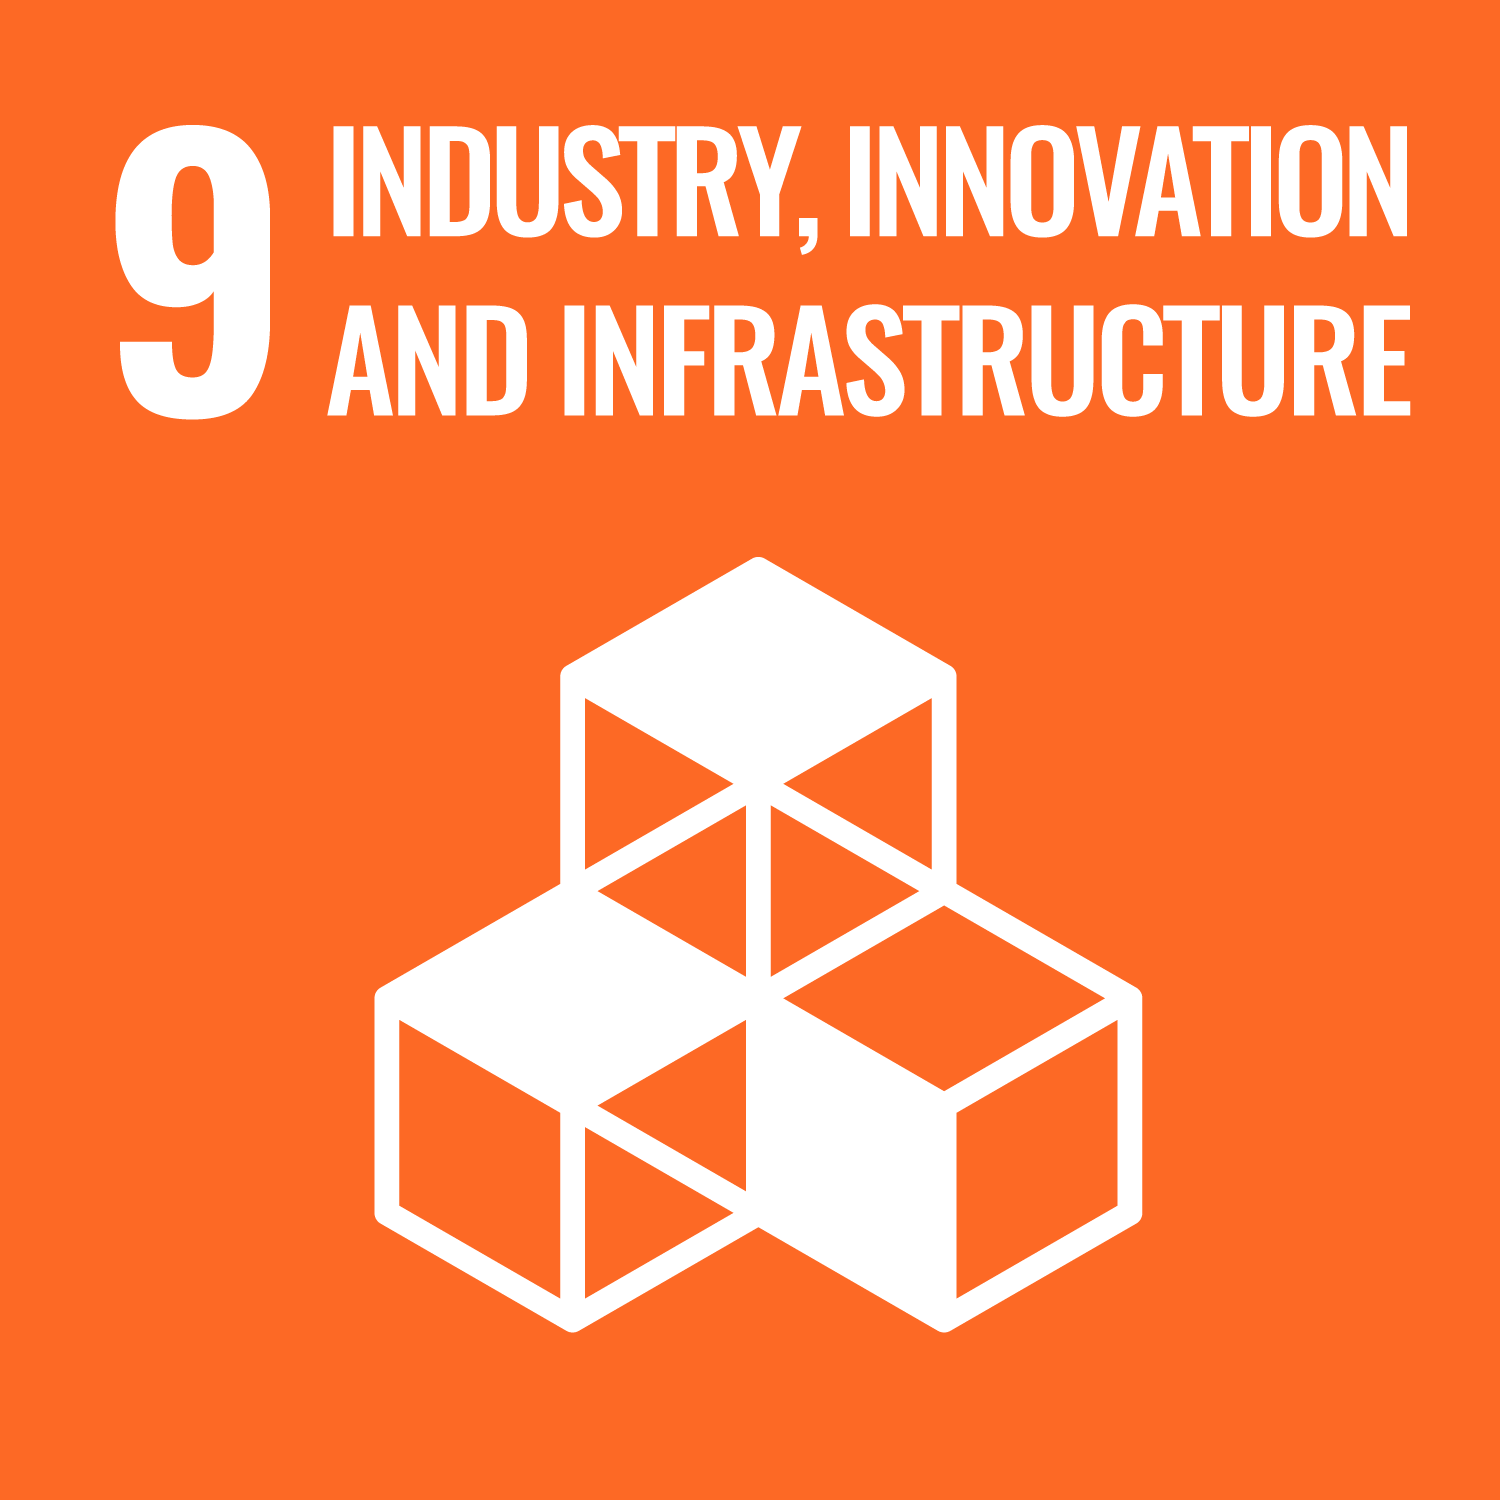 09 Industry, Innovation, and Infrastructure